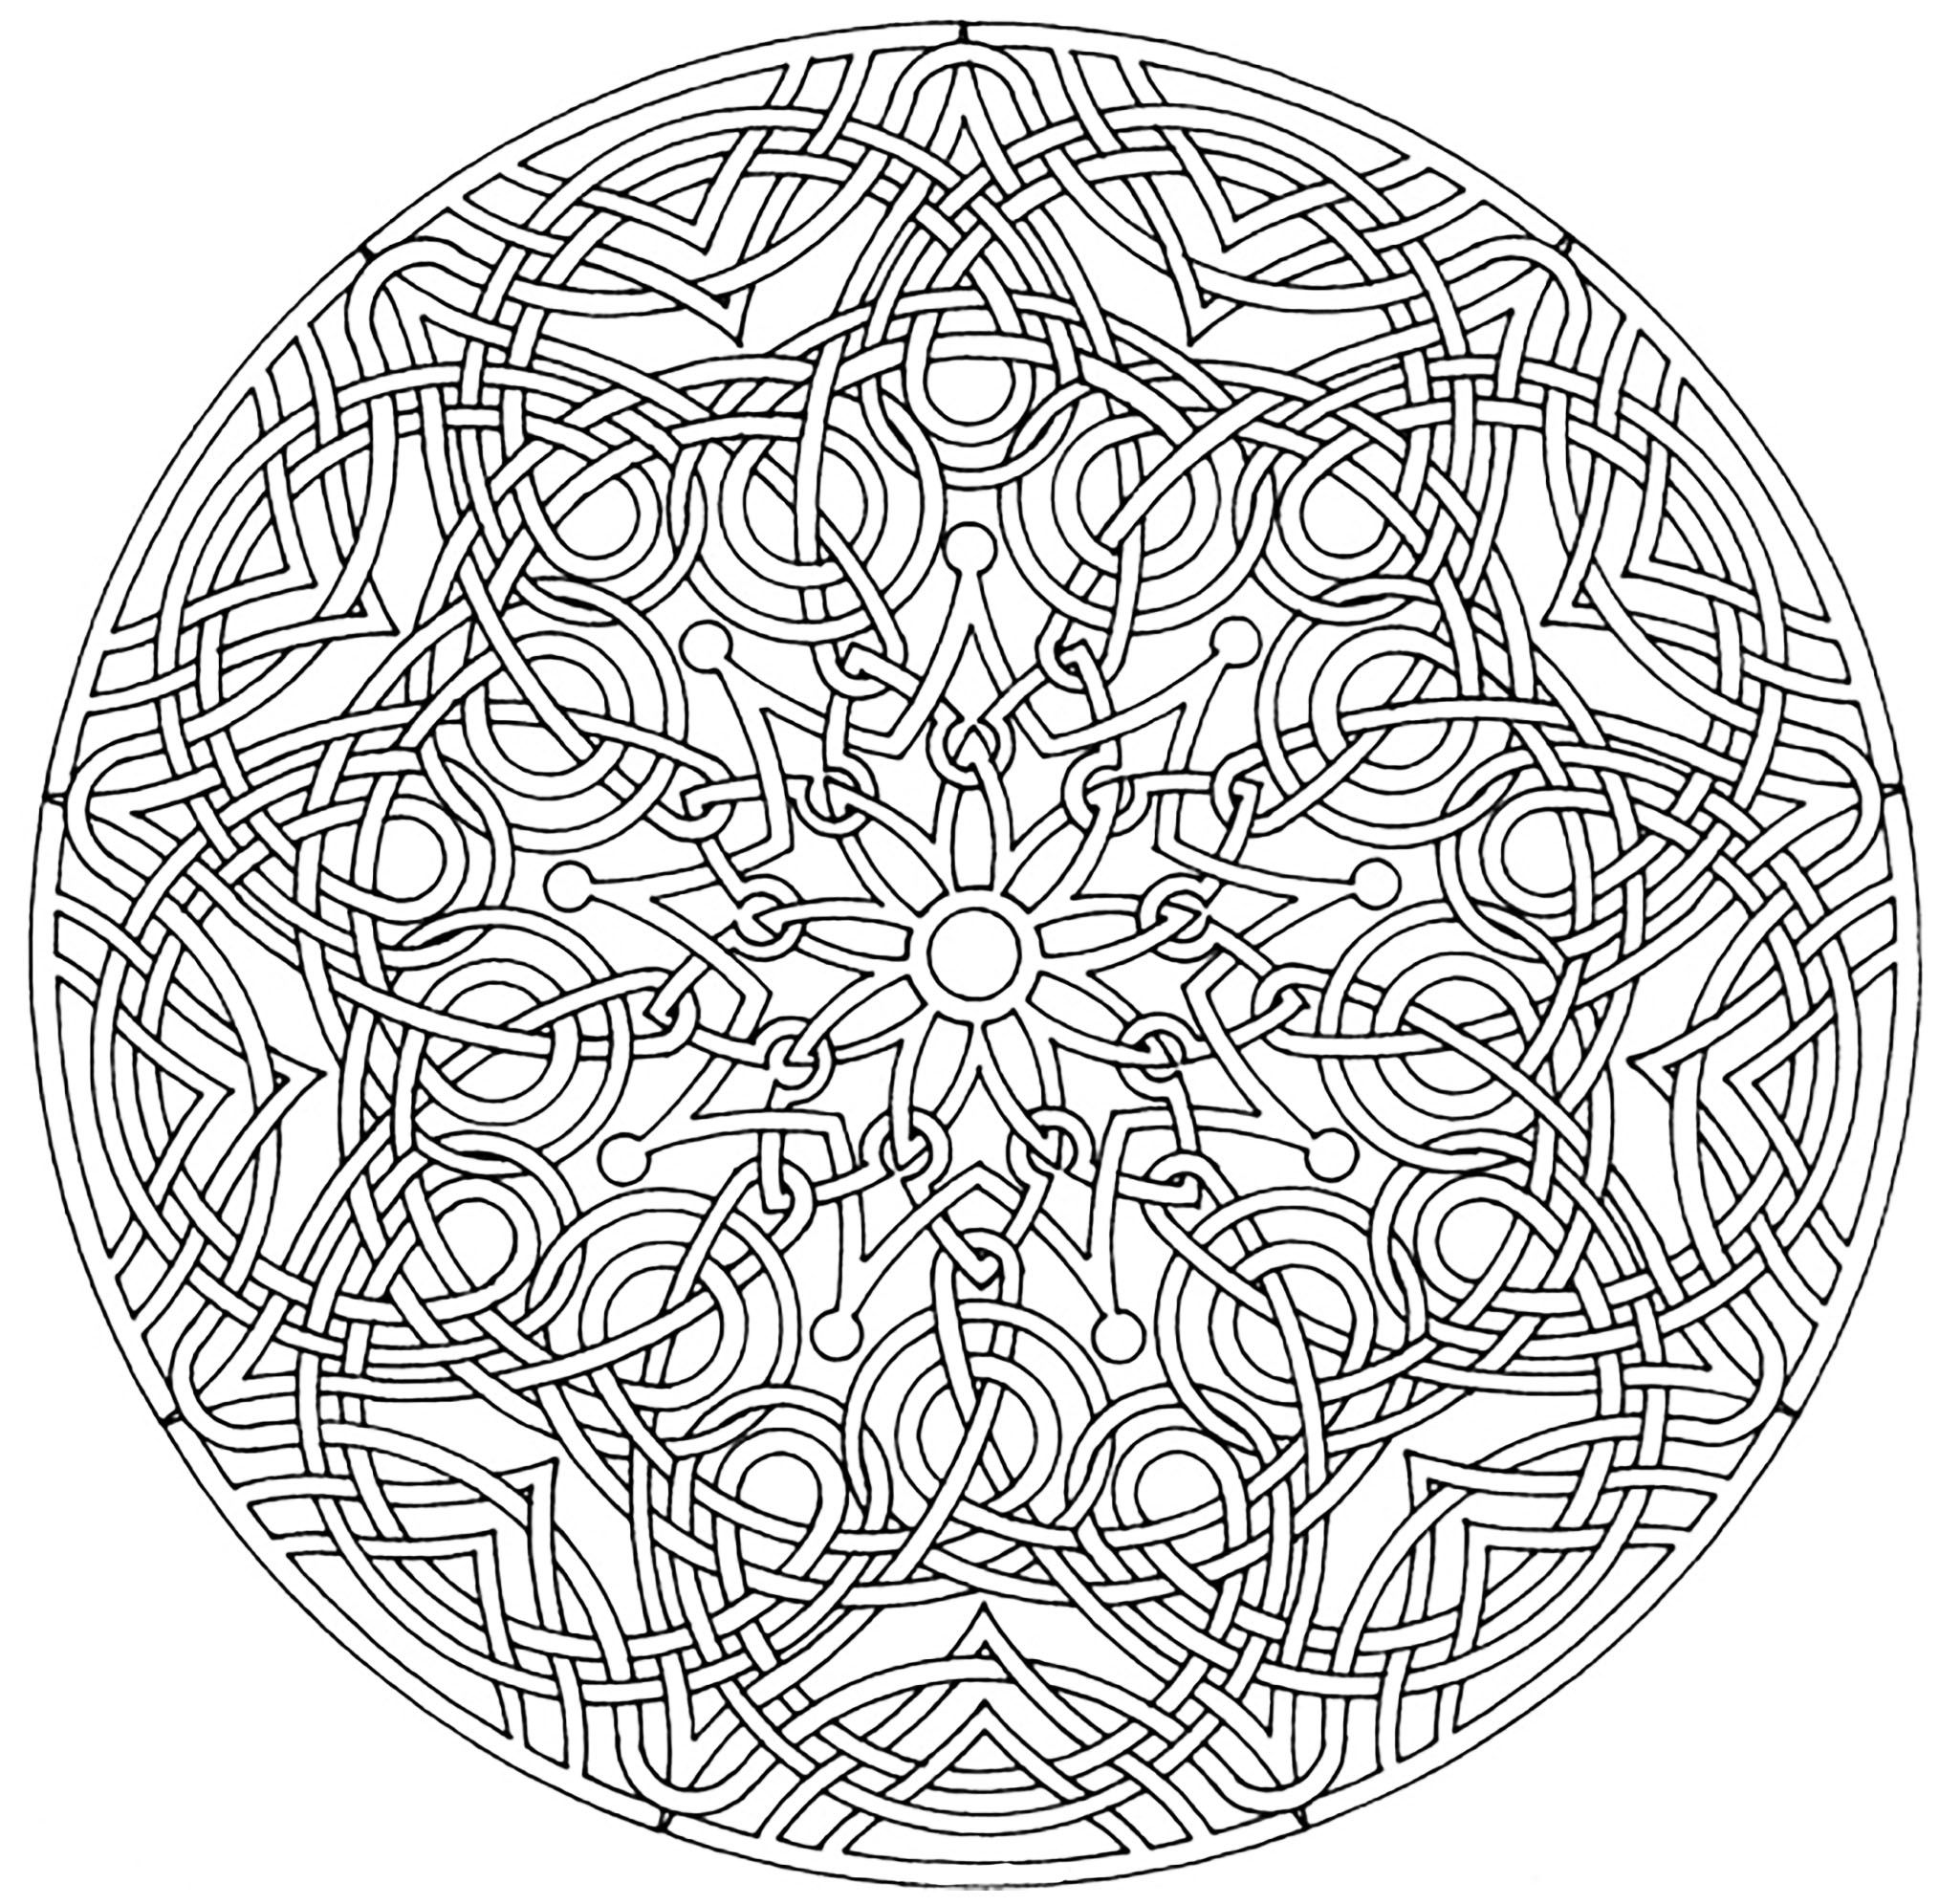 Mandalas Coloring Pages For Adults Coloring Page Mandala Royal Mandala Coloring Pages Mandala Coloring Books Mandala Coloring